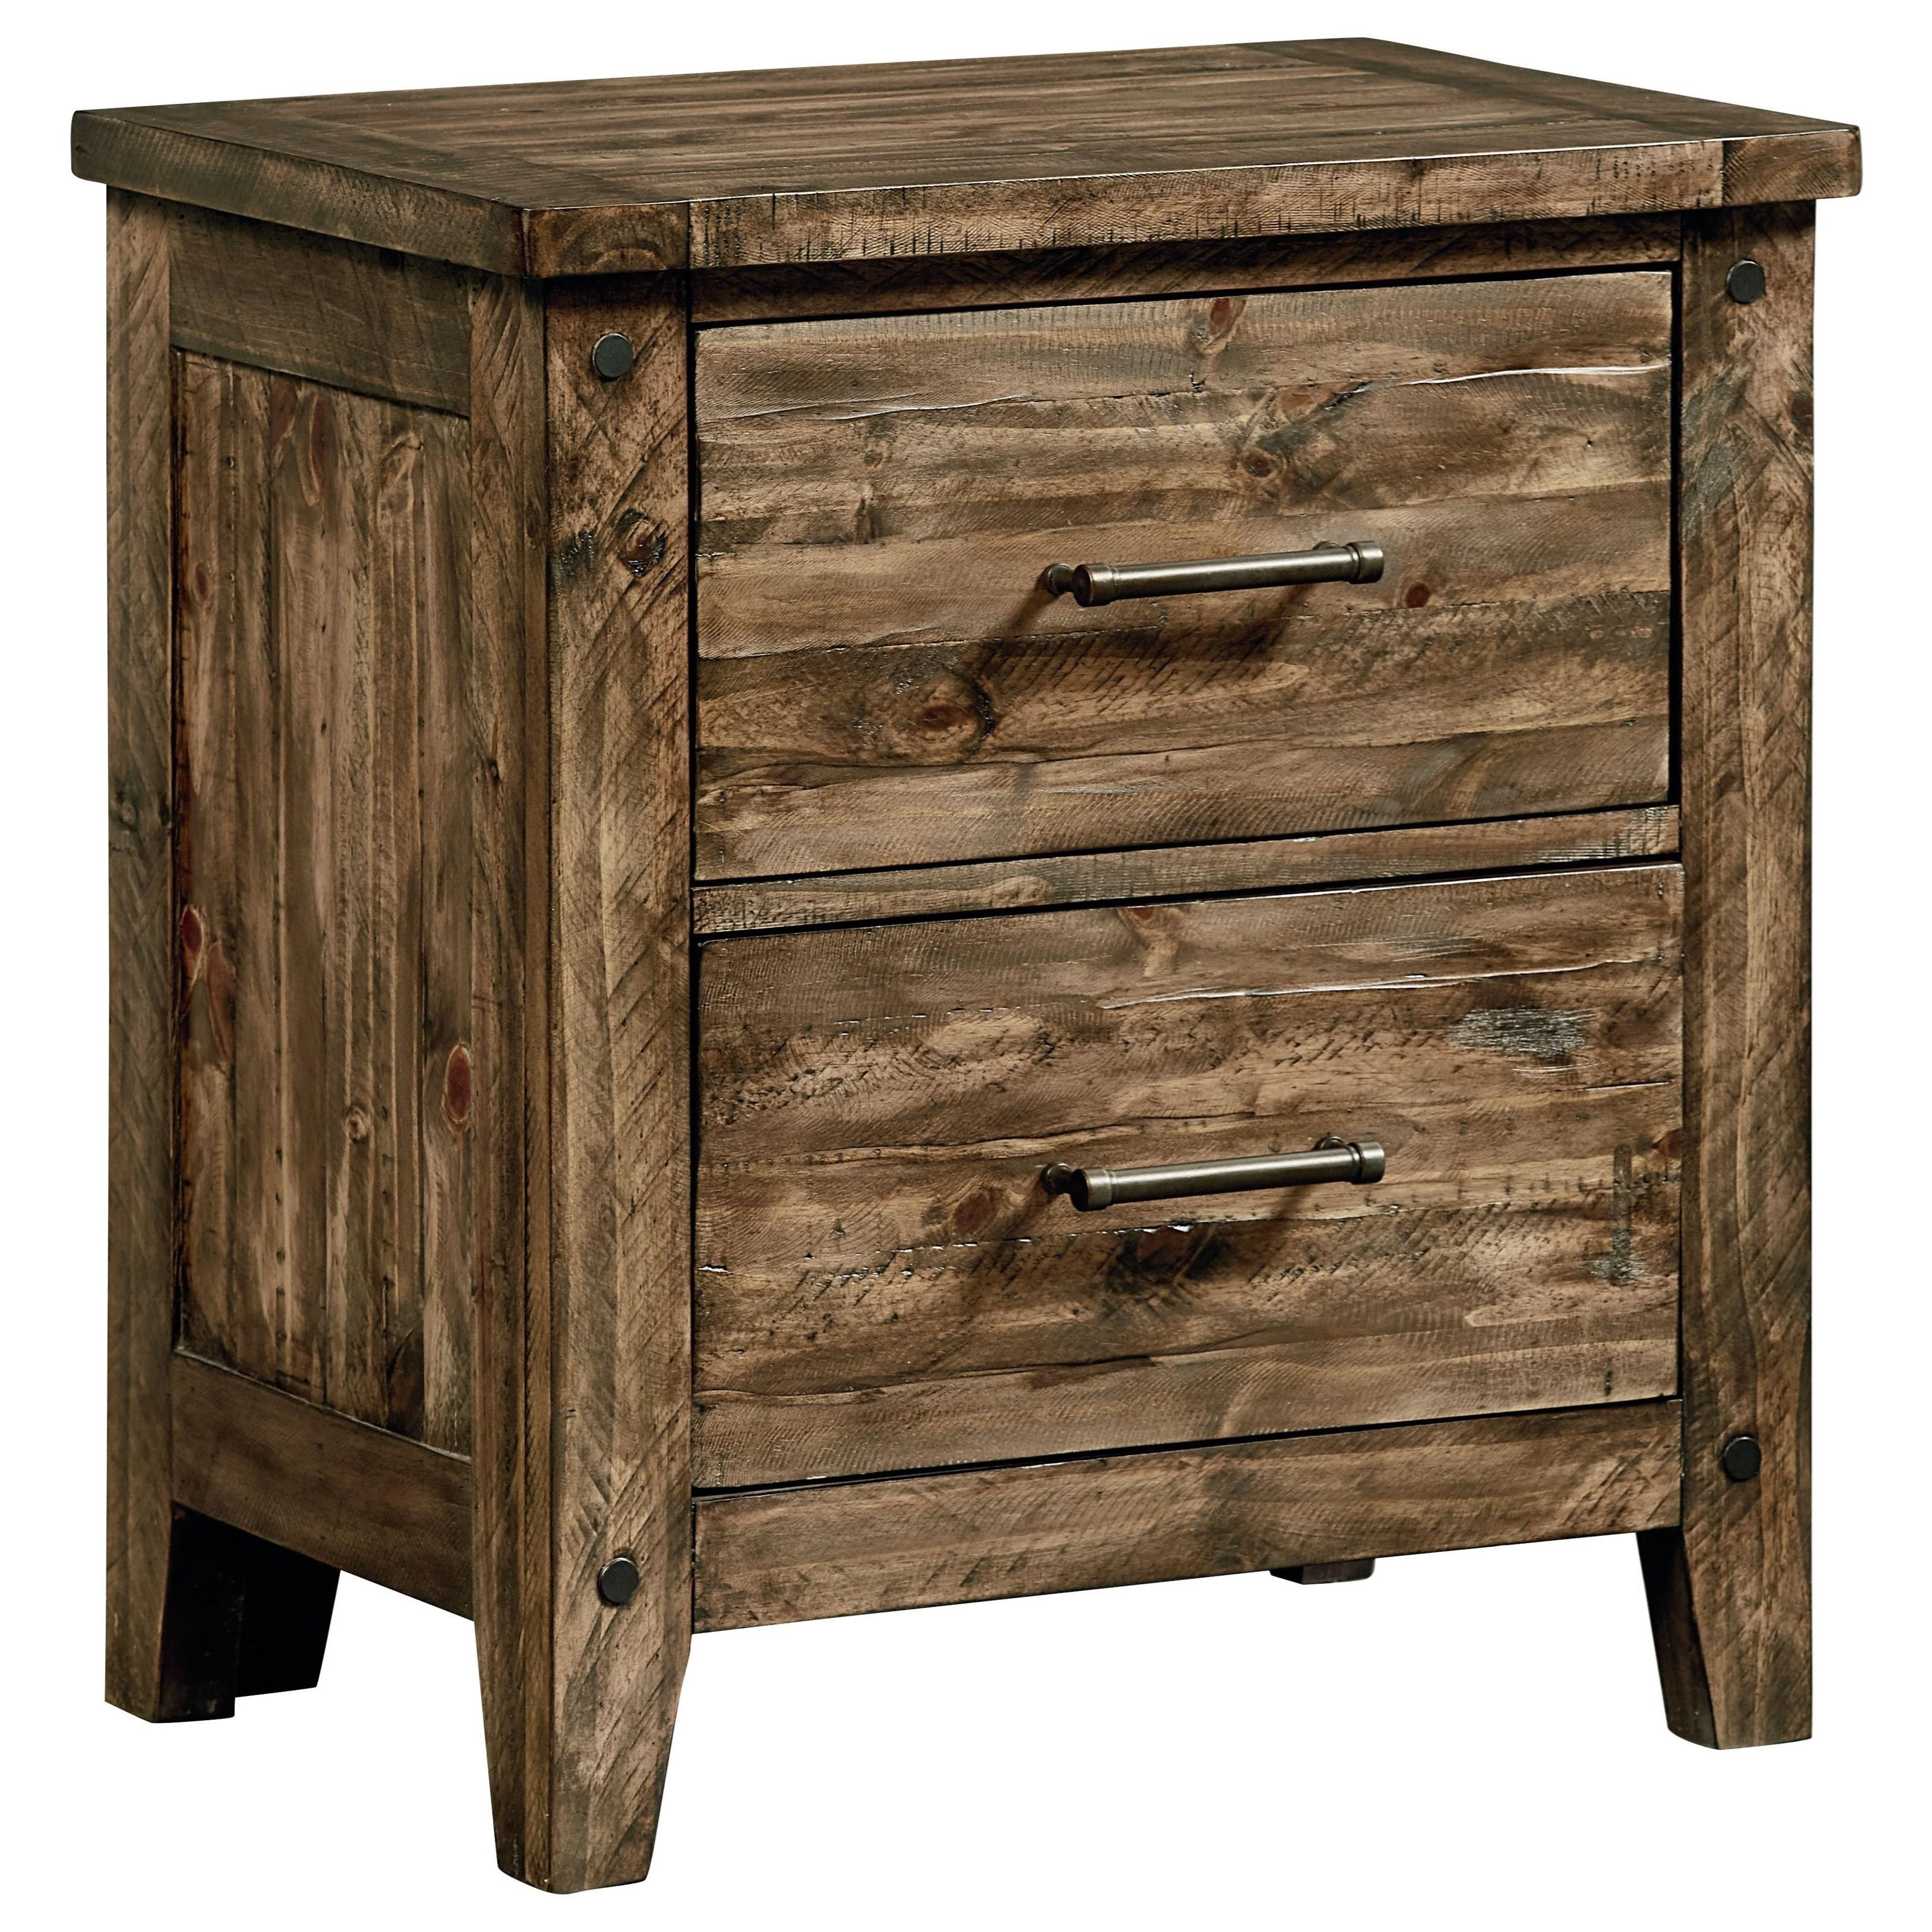 Standard Furniture Nelson 92507 Rustic Nightstand Great American Home Store Night Stands